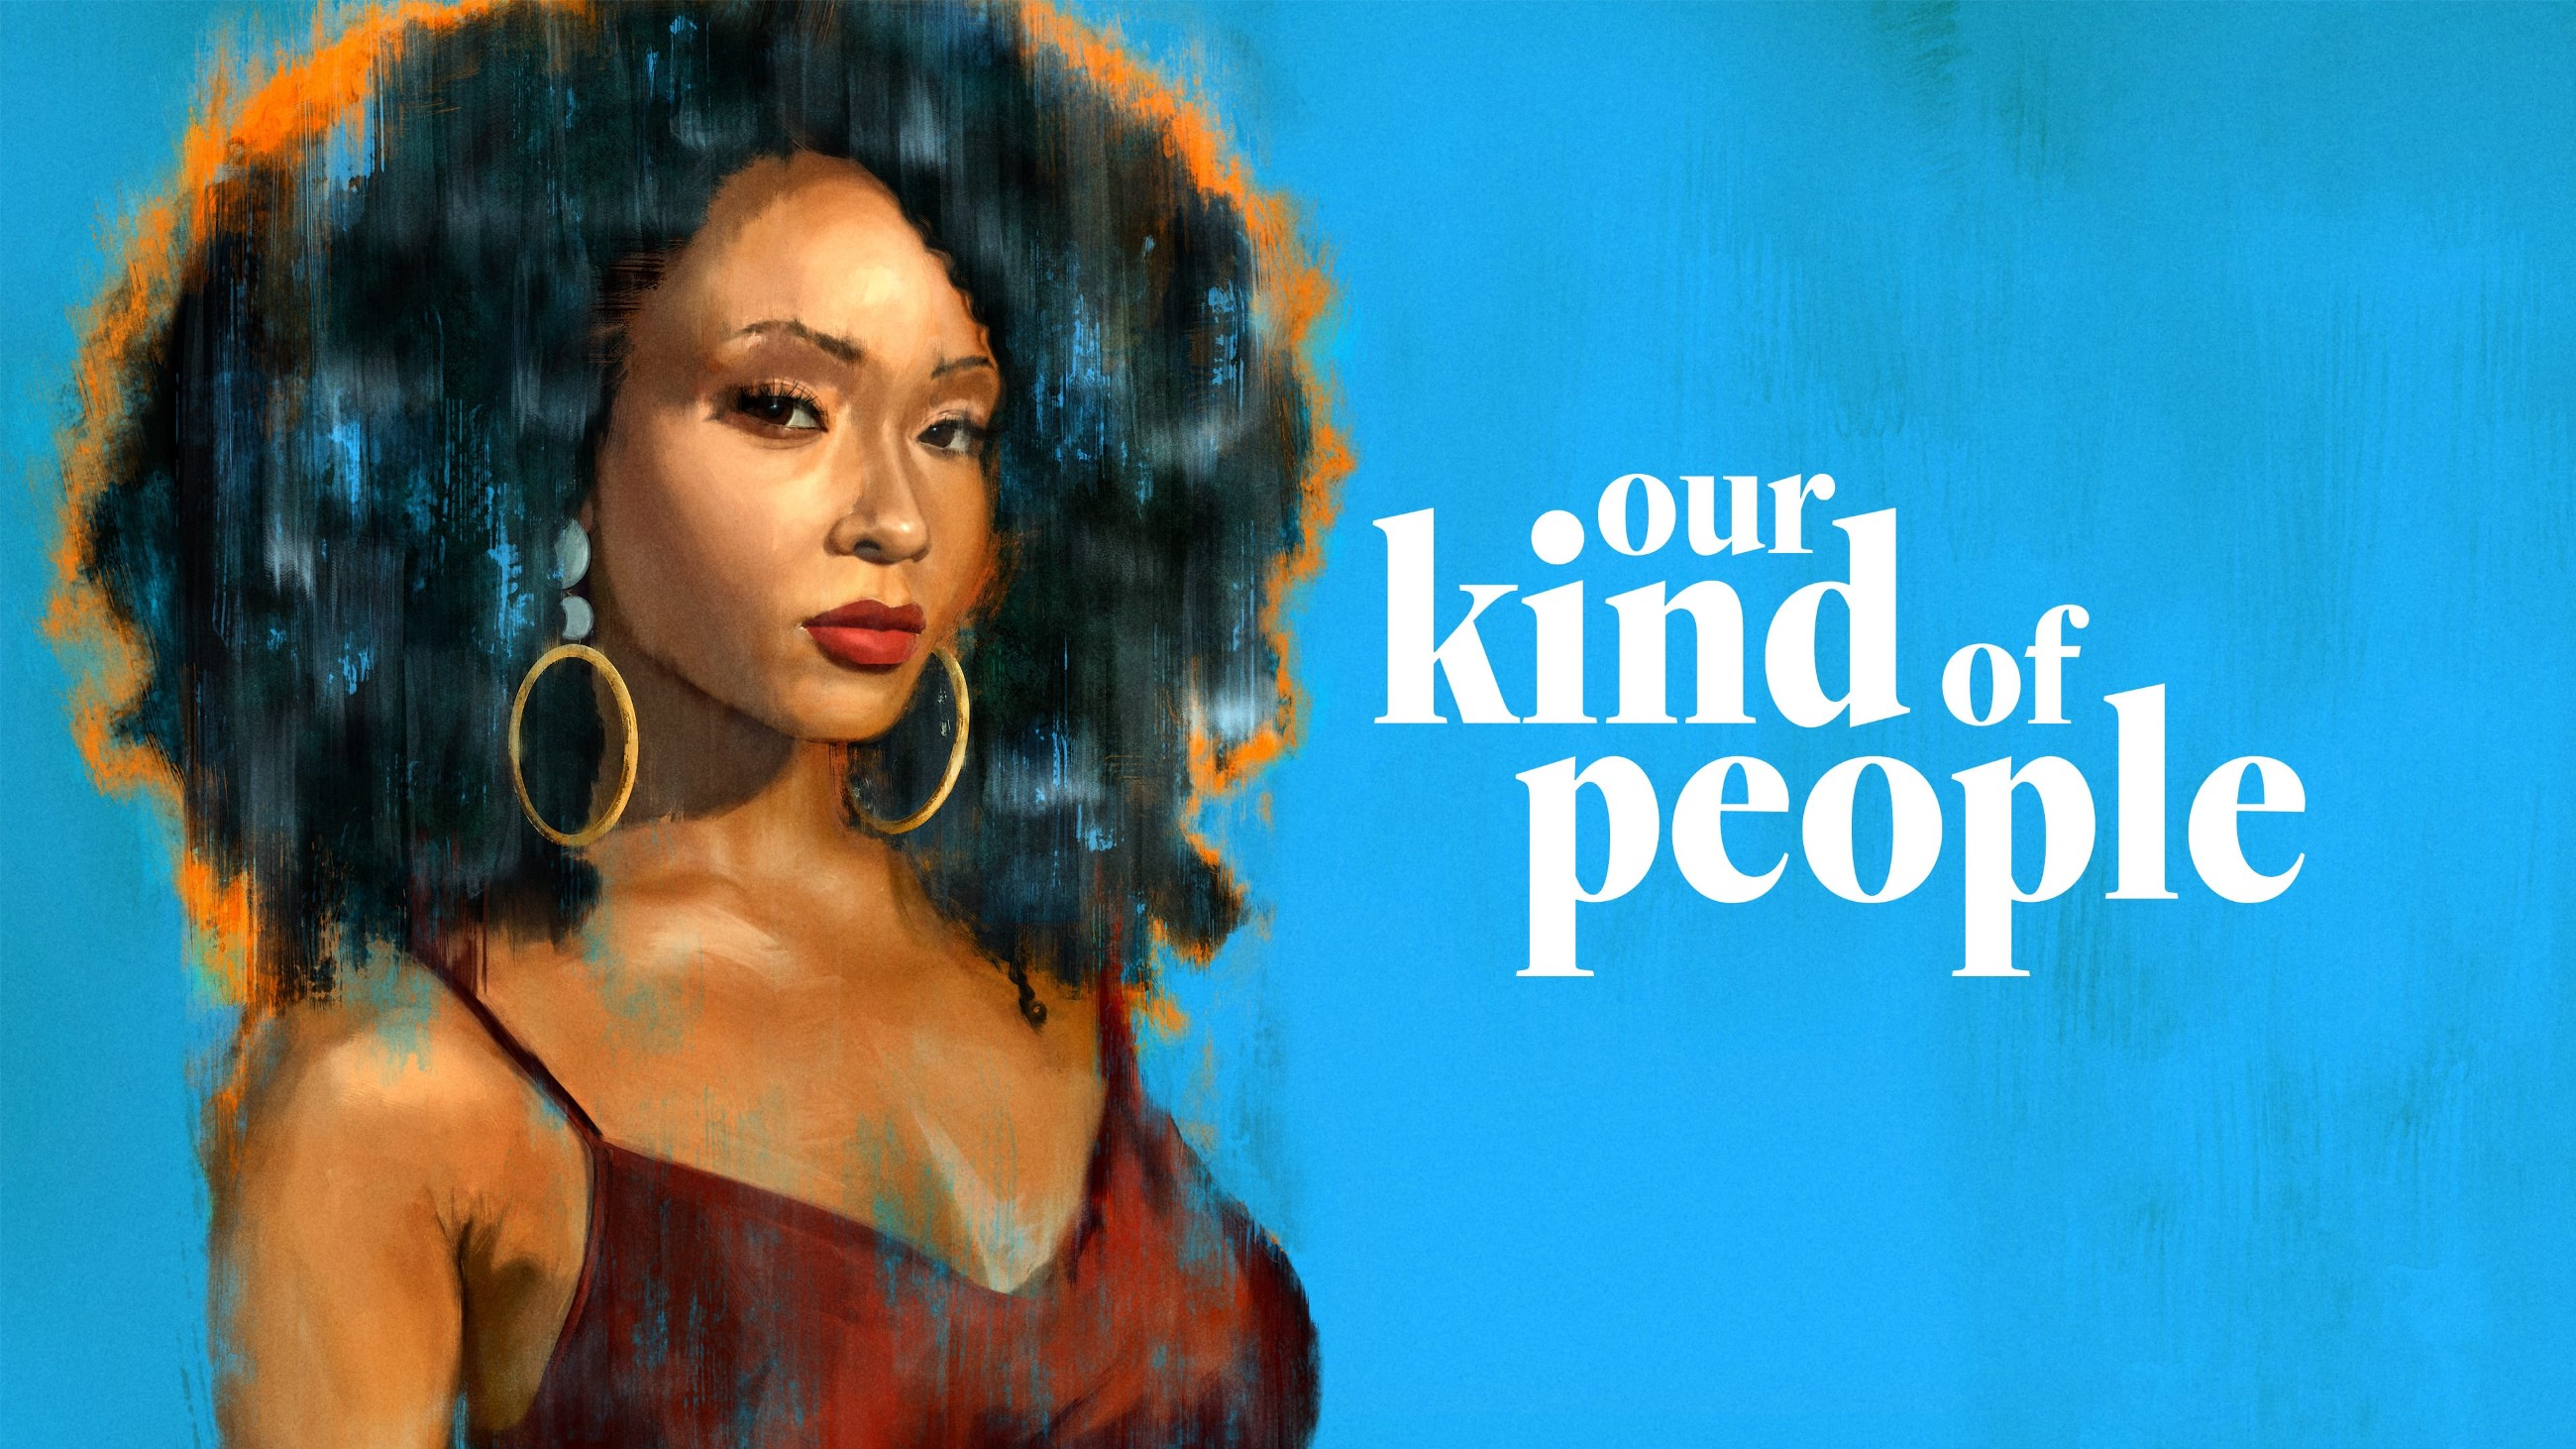 Our Kind of People—s1e01 | Series 1 Episode 1 (Full Episode)